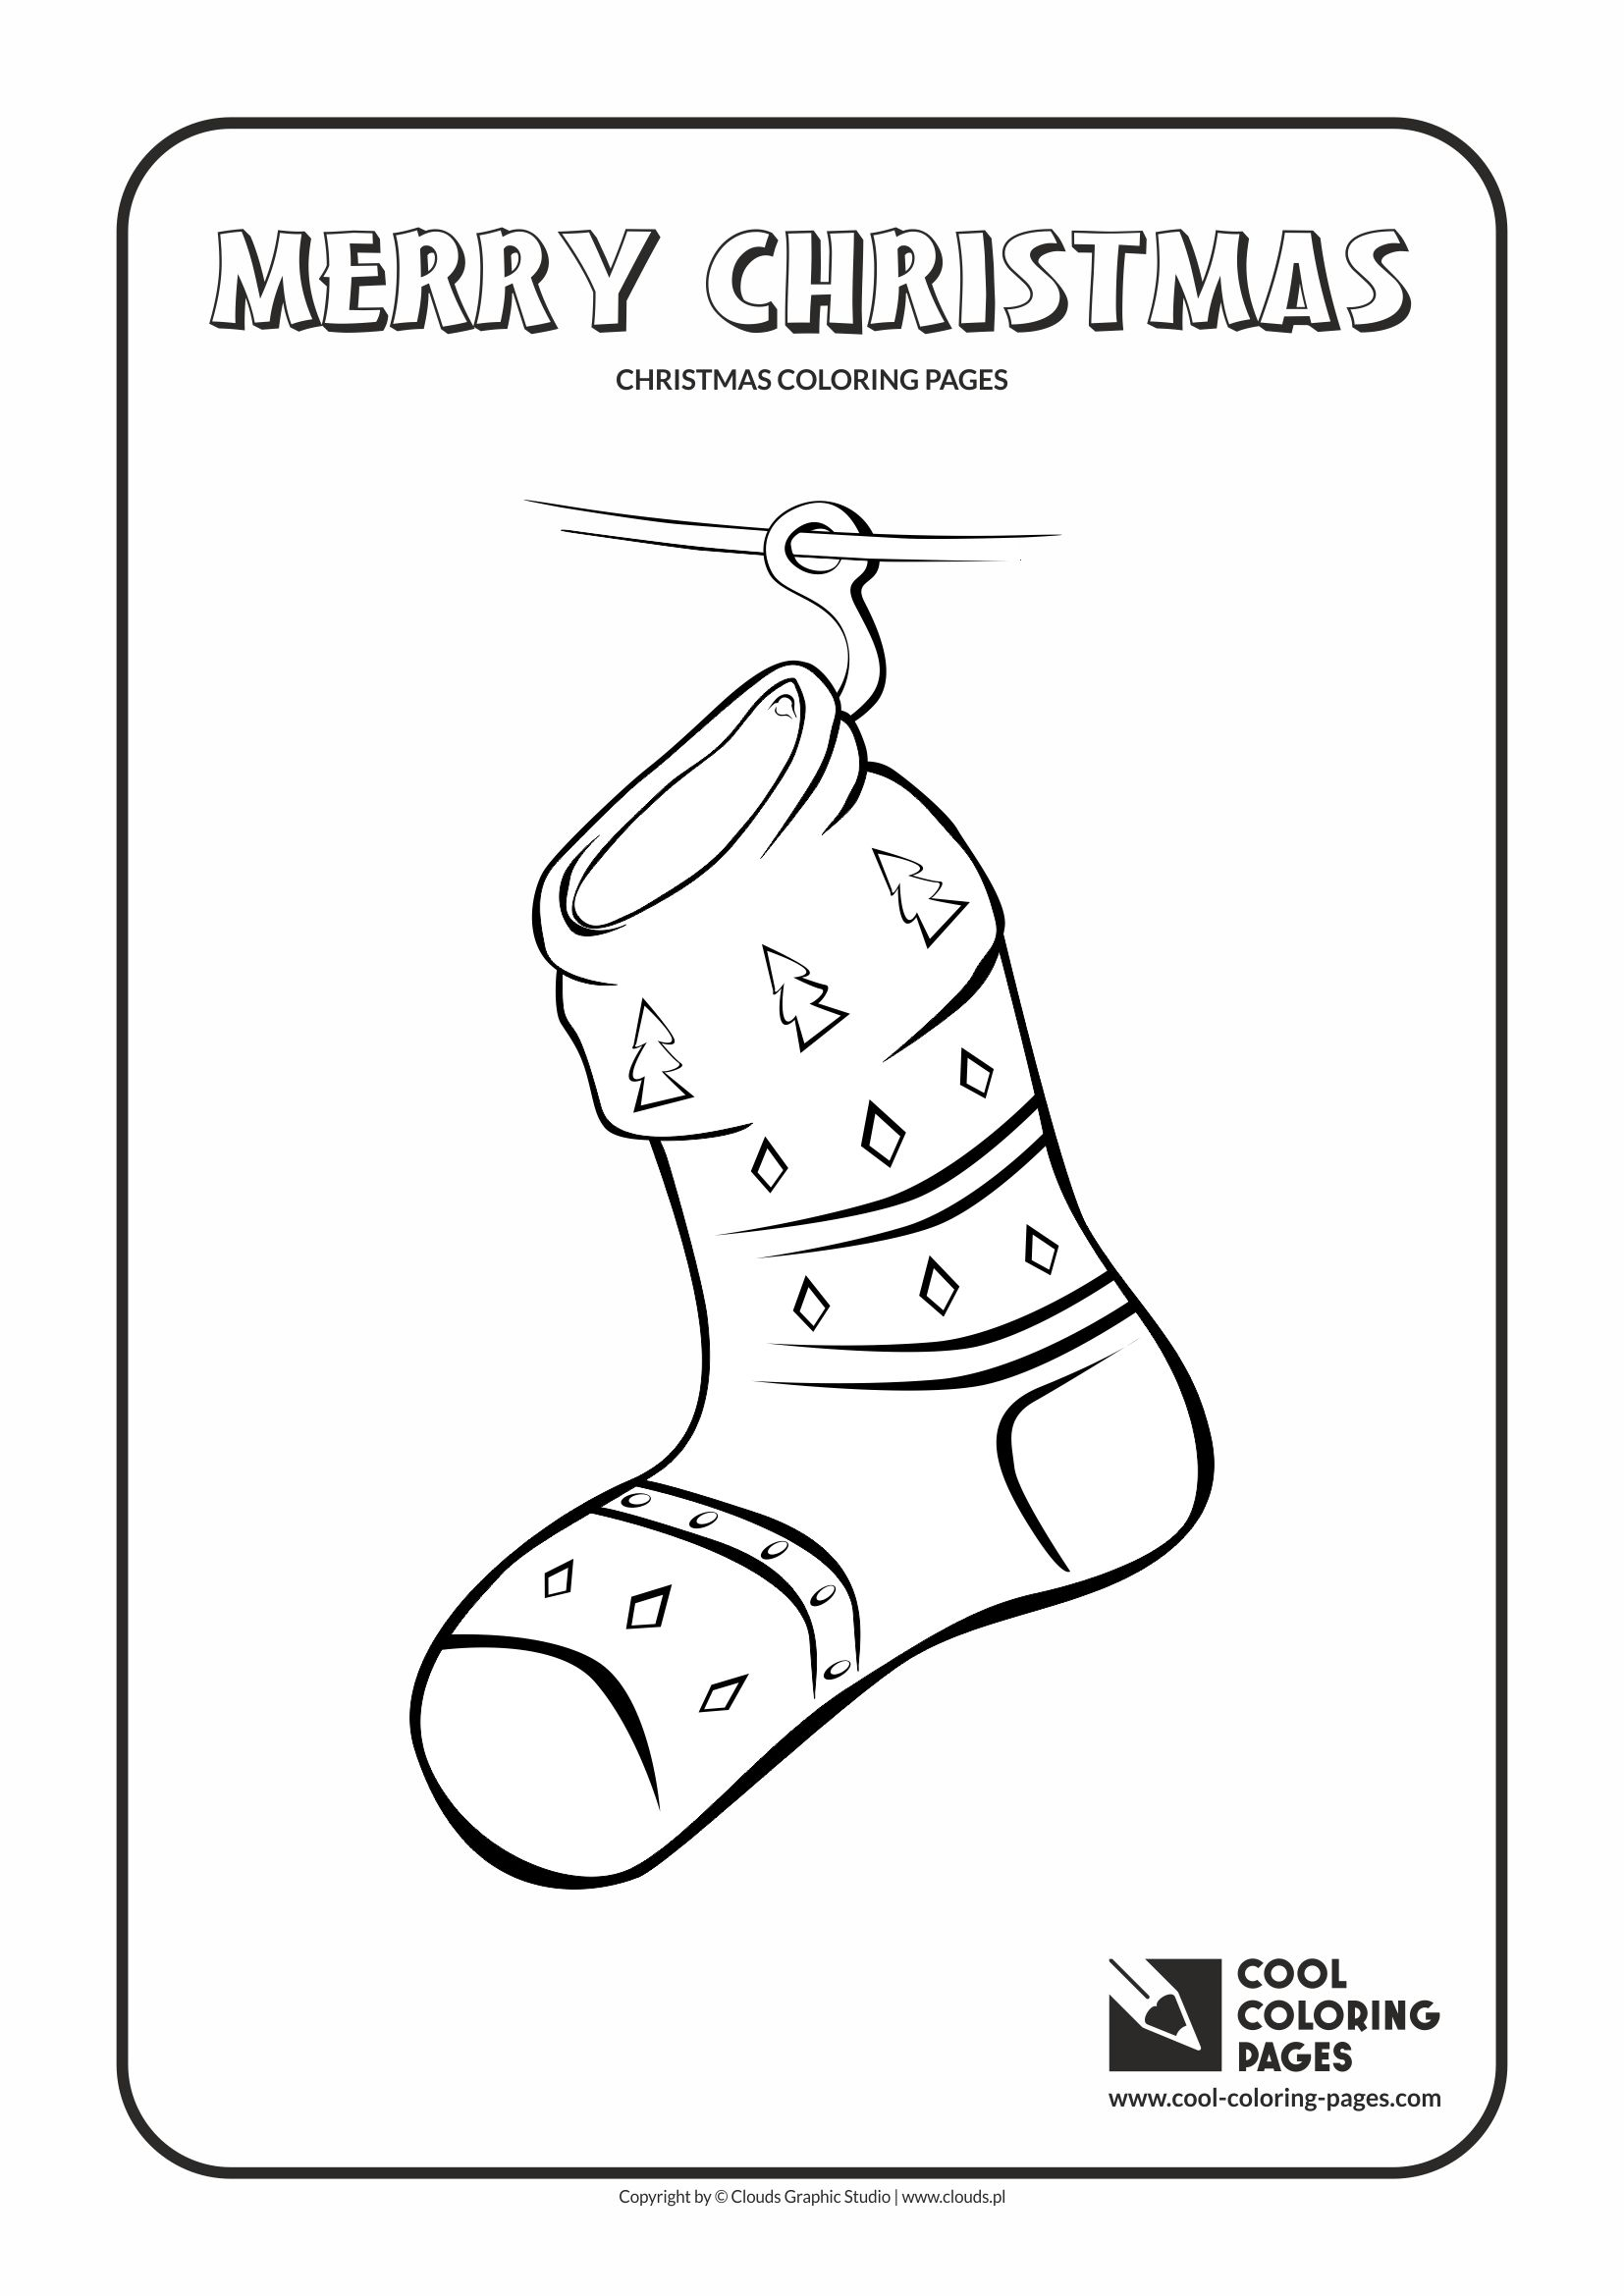 socks coloring page - coloringpages1001 coloring pages christmas socks christmas socks coloring pages 9